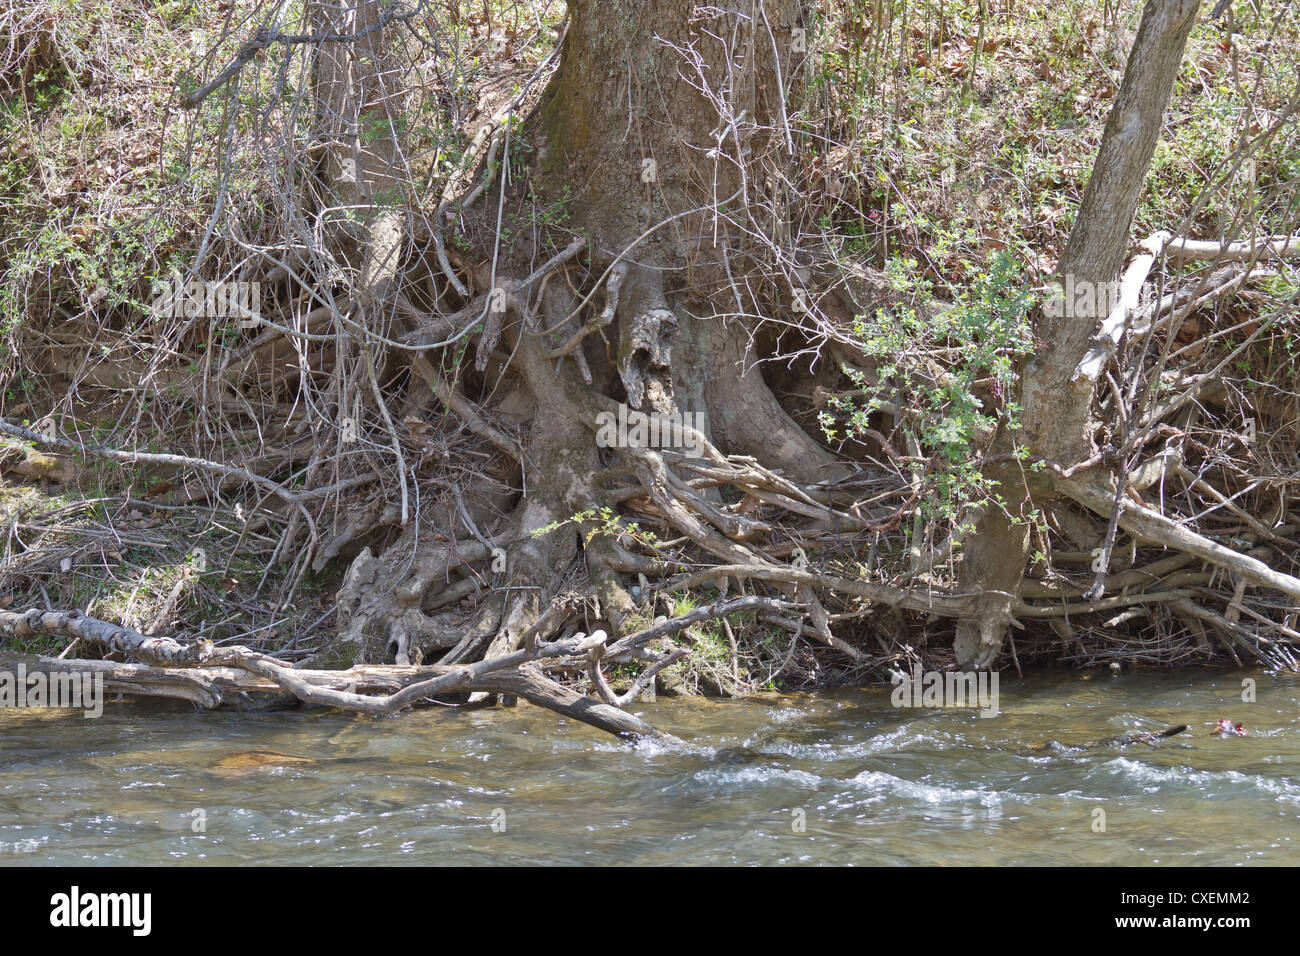 A tangled snarl of tree roots along a river bank Stock Photo